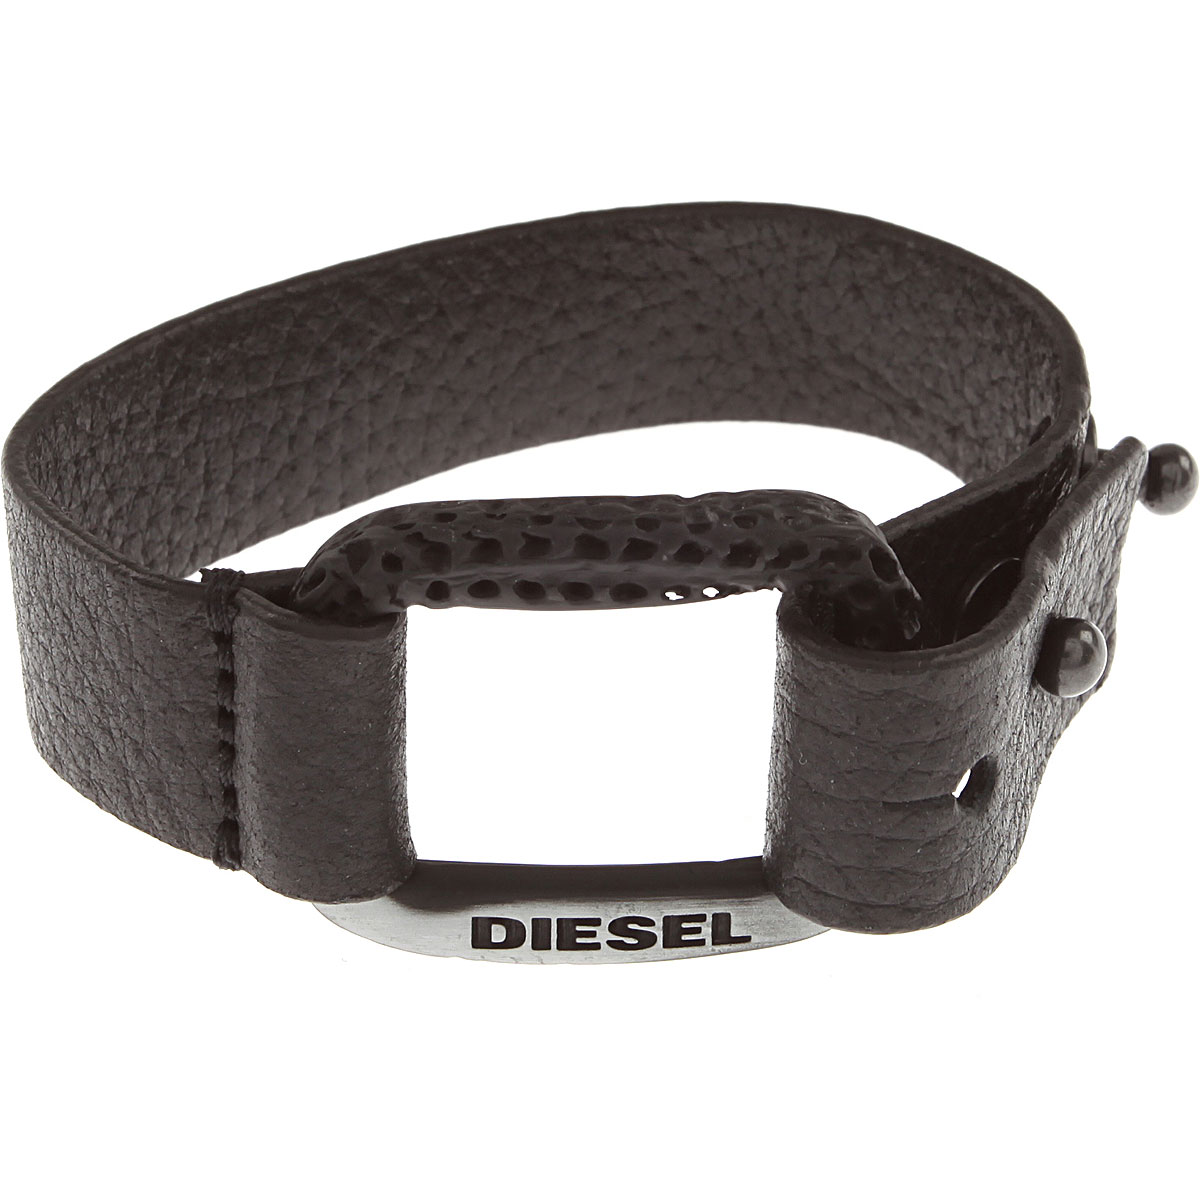 Diesel Bracelet for Men On Sale in Outlet, Black, Leather, 2019